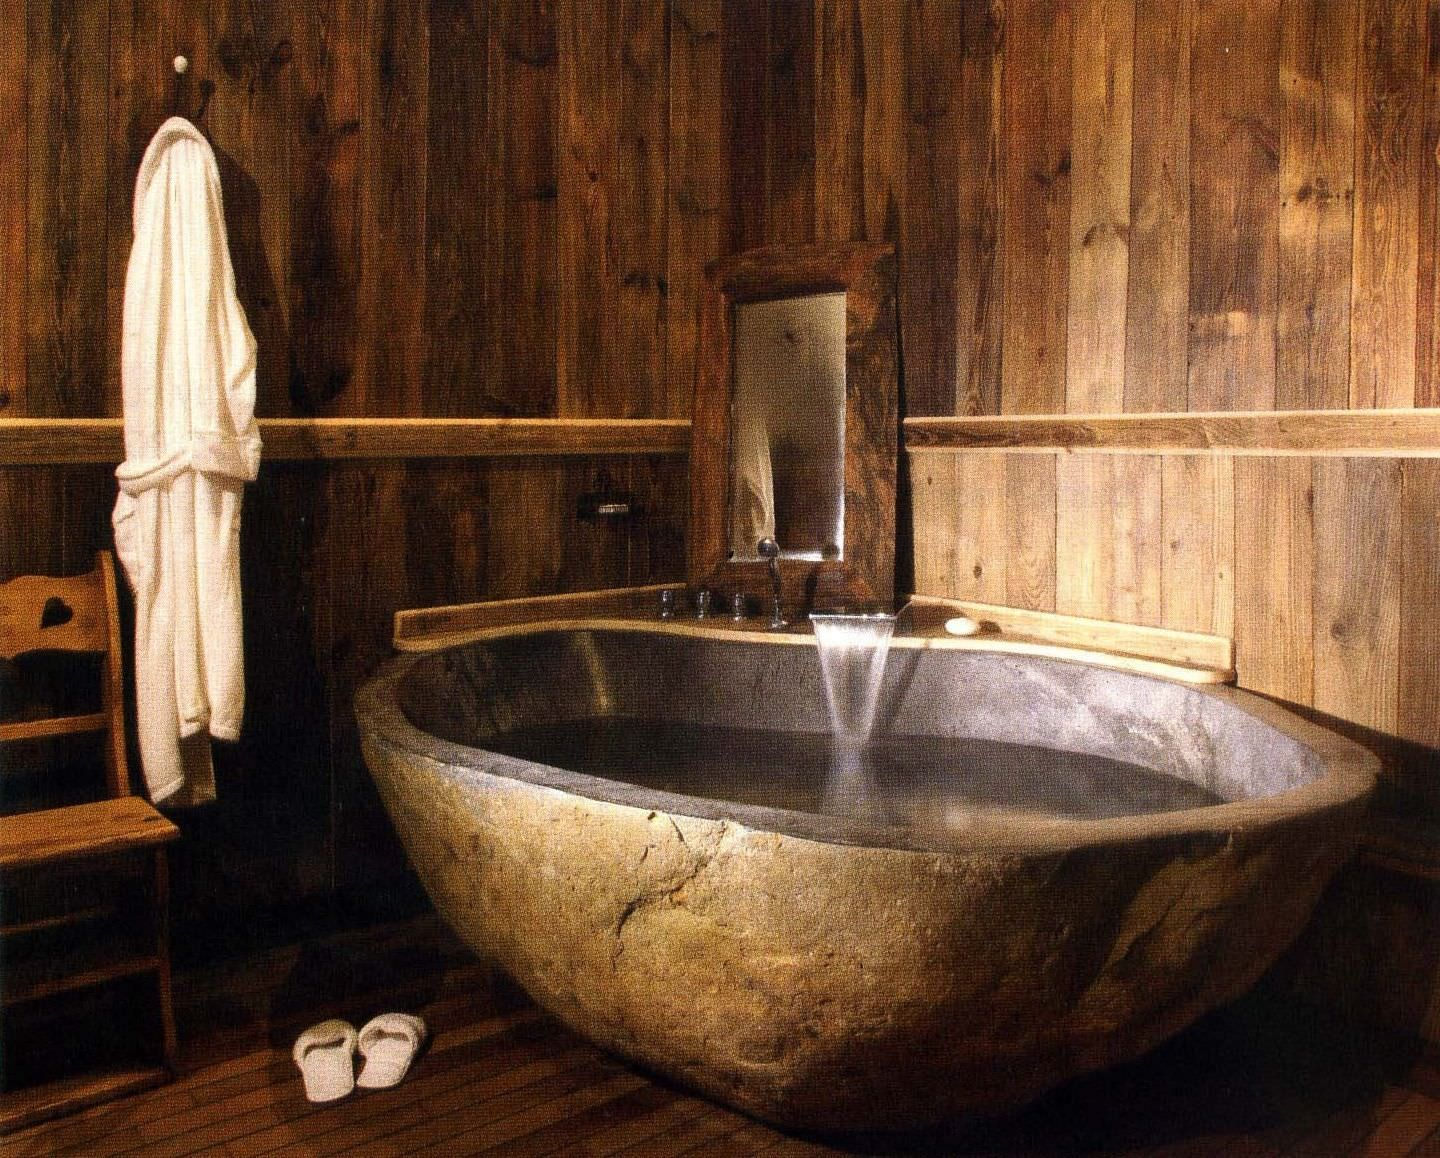 Rustic bathroom shower ideas - Find This Pin And More On Ba O Beauteous Furniture Wonderful Rustic Wooden Teak Surround Bathroom Design Ideas